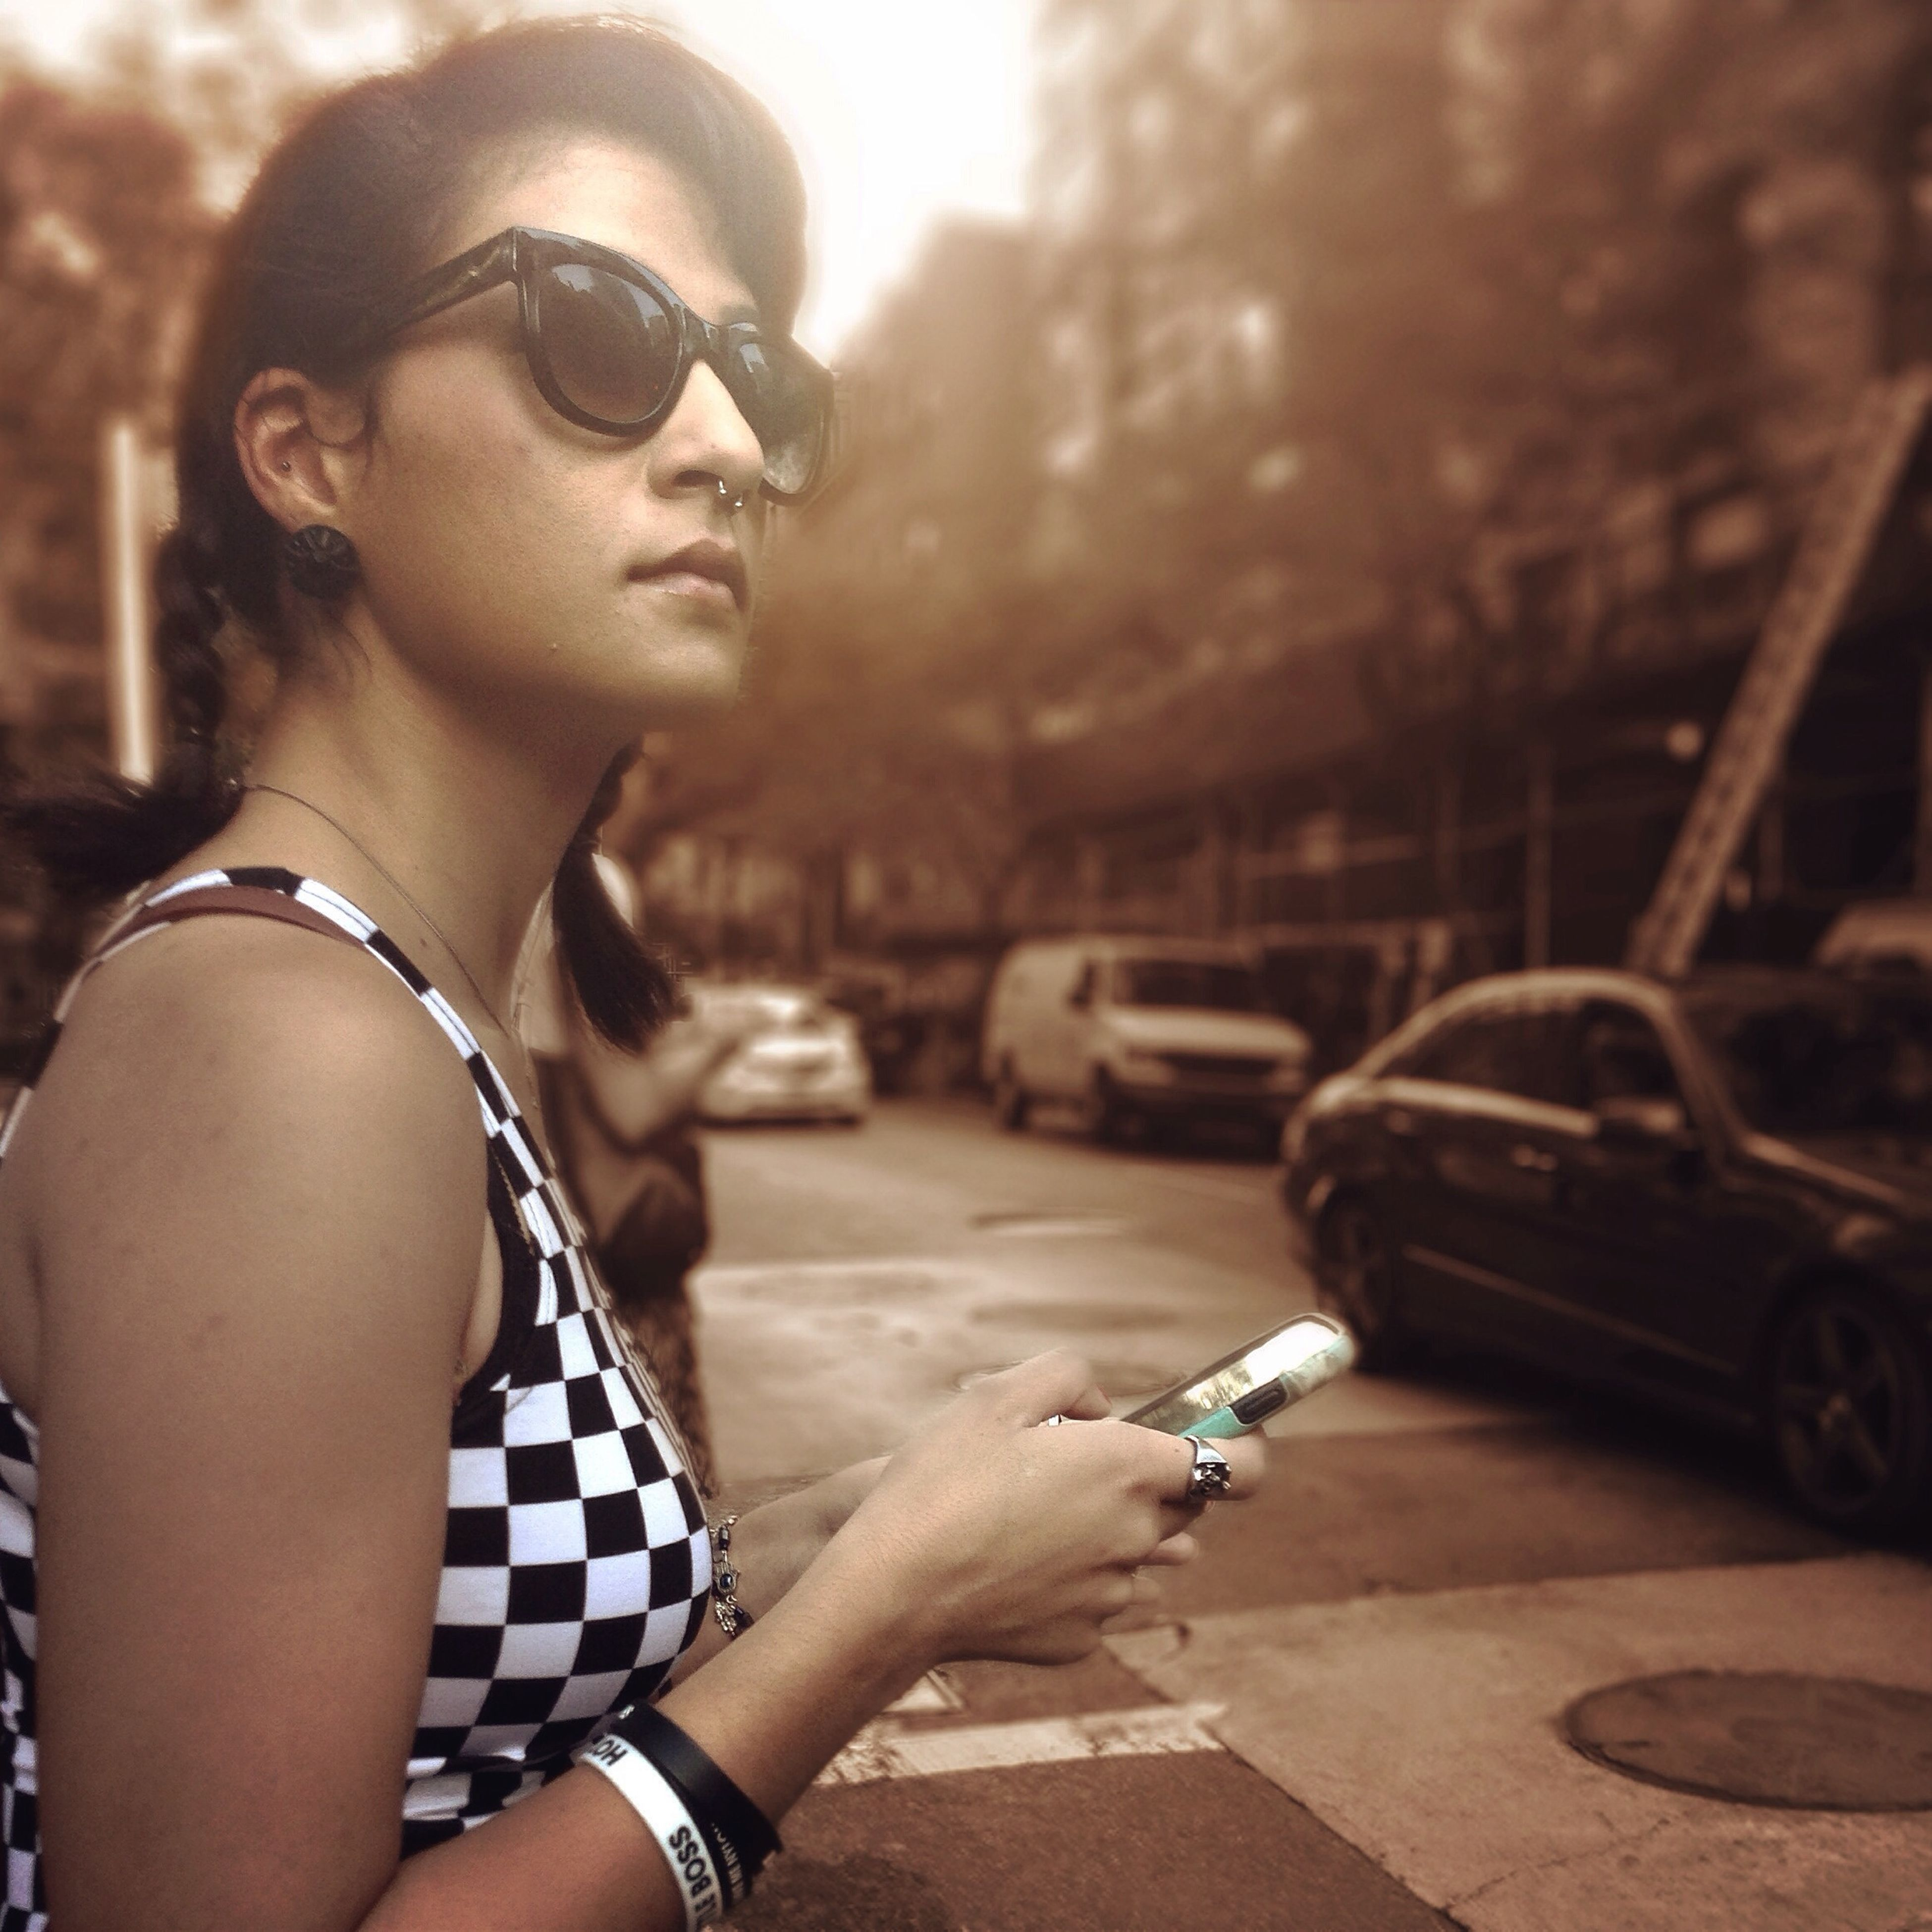 young adult, lifestyles, person, leisure activity, portrait, looking at camera, young women, sunglasses, front view, casual clothing, focus on foreground, smiling, fashion, side view, building exterior, mid adult